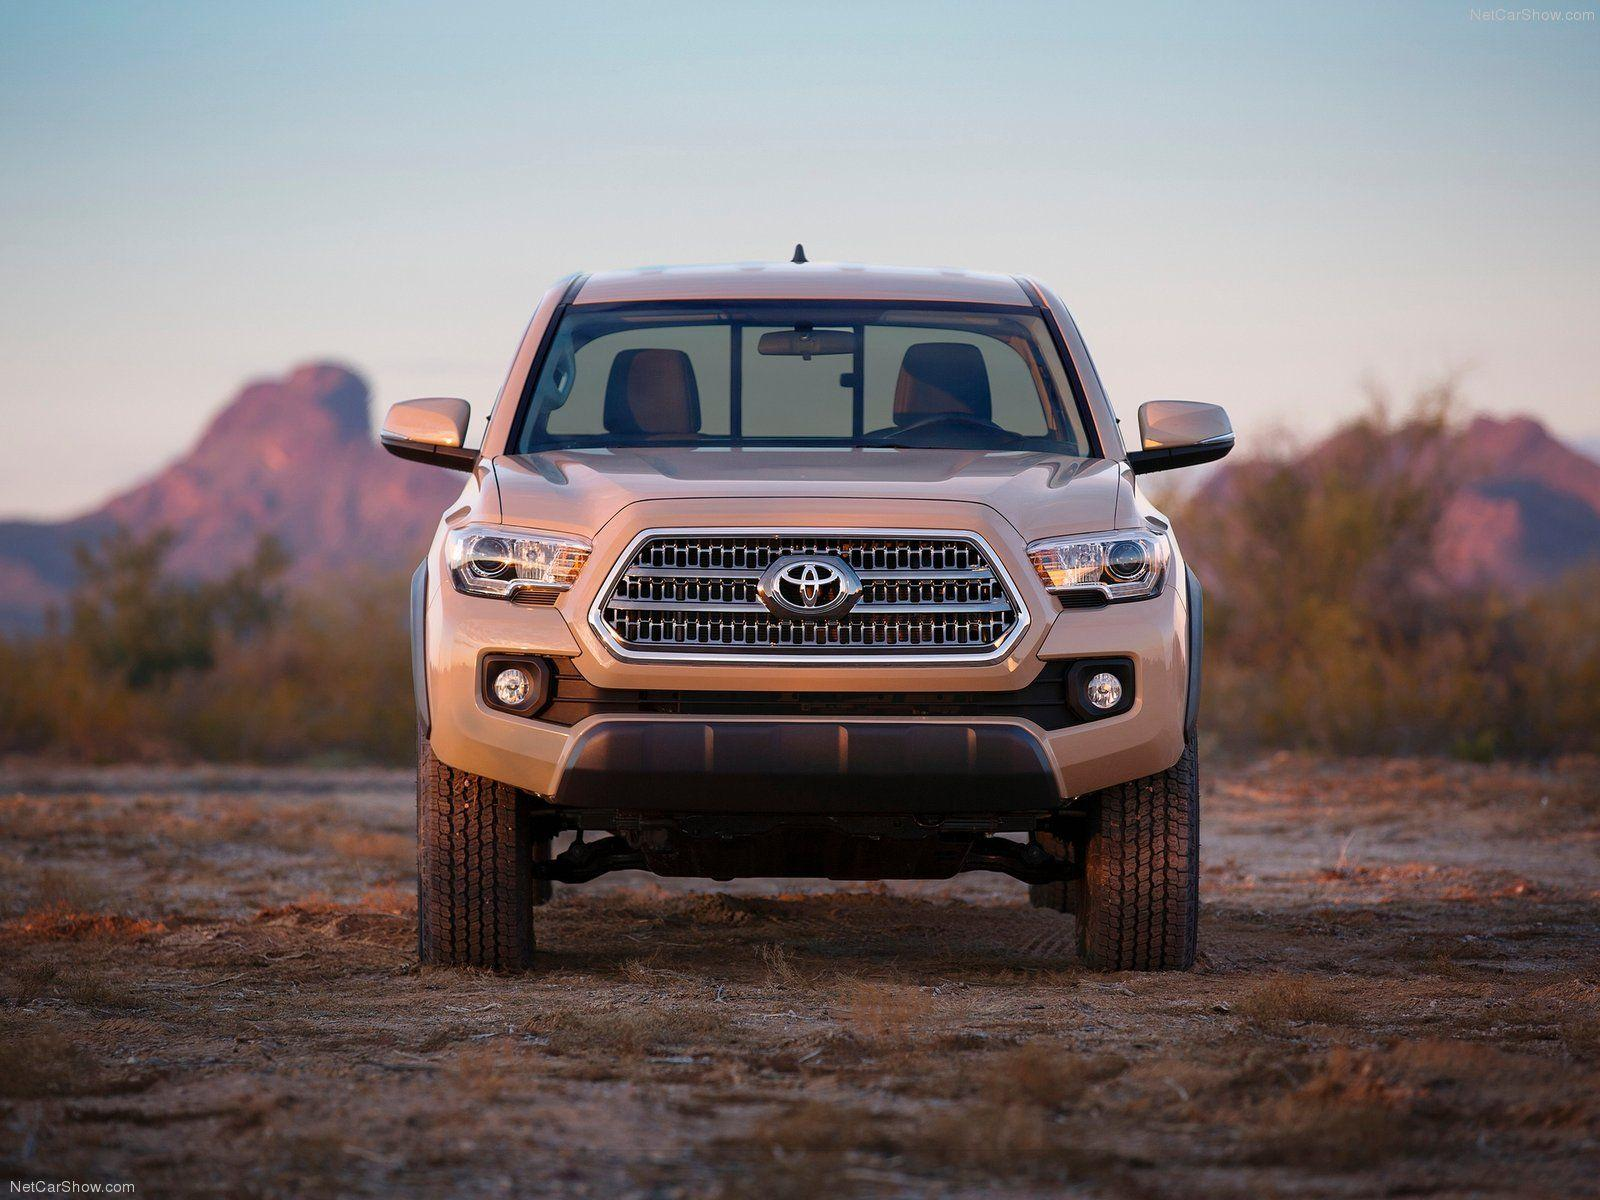 2016 Toyota Tacoma TRD Off-Road Wallpaper and Theme ...